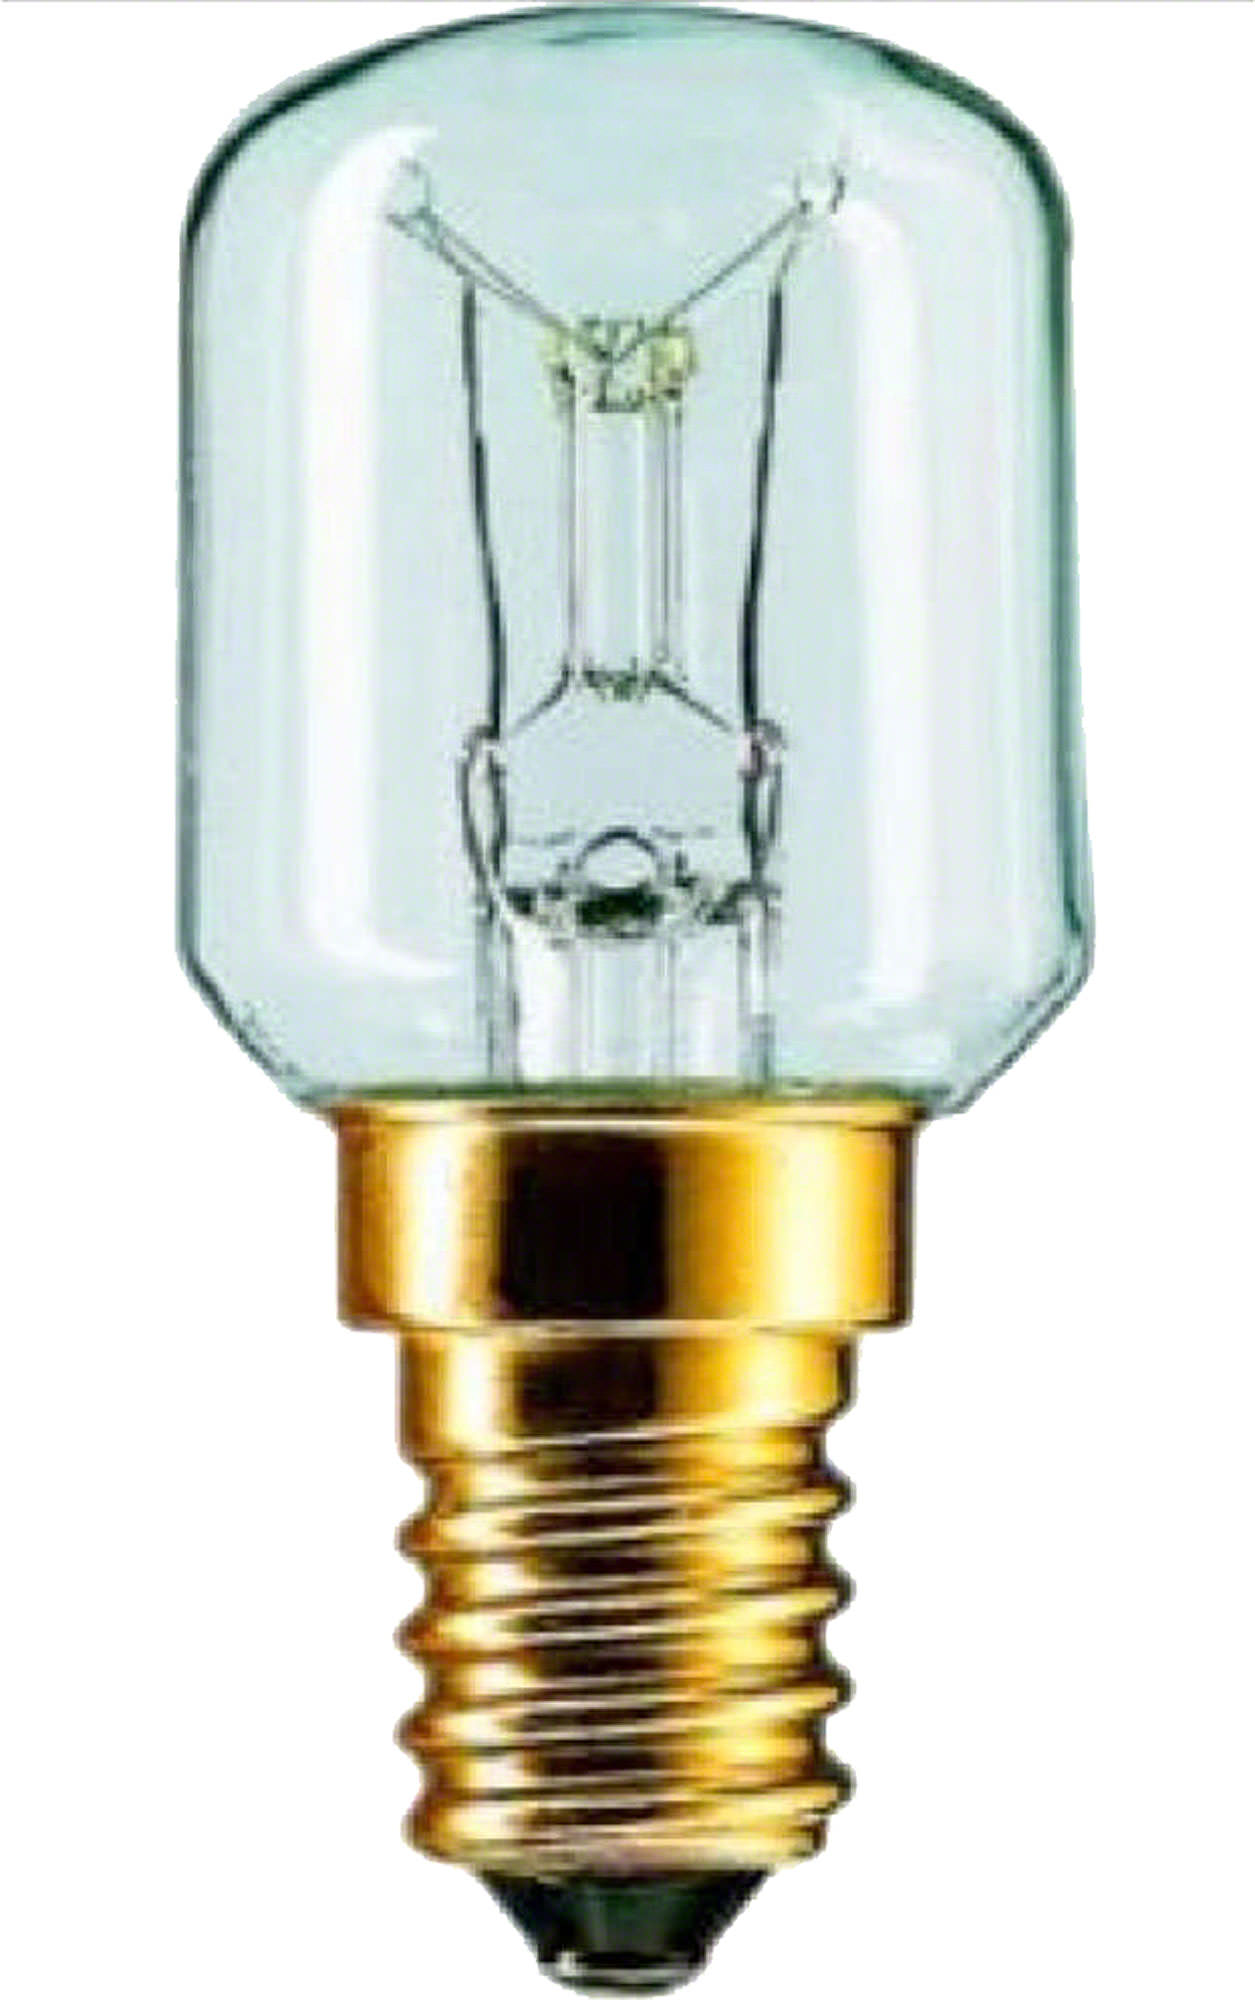 Philips Softone Flame Pear Lamp Clear E14 Socket 230v 15w By Erzgebirge Palast